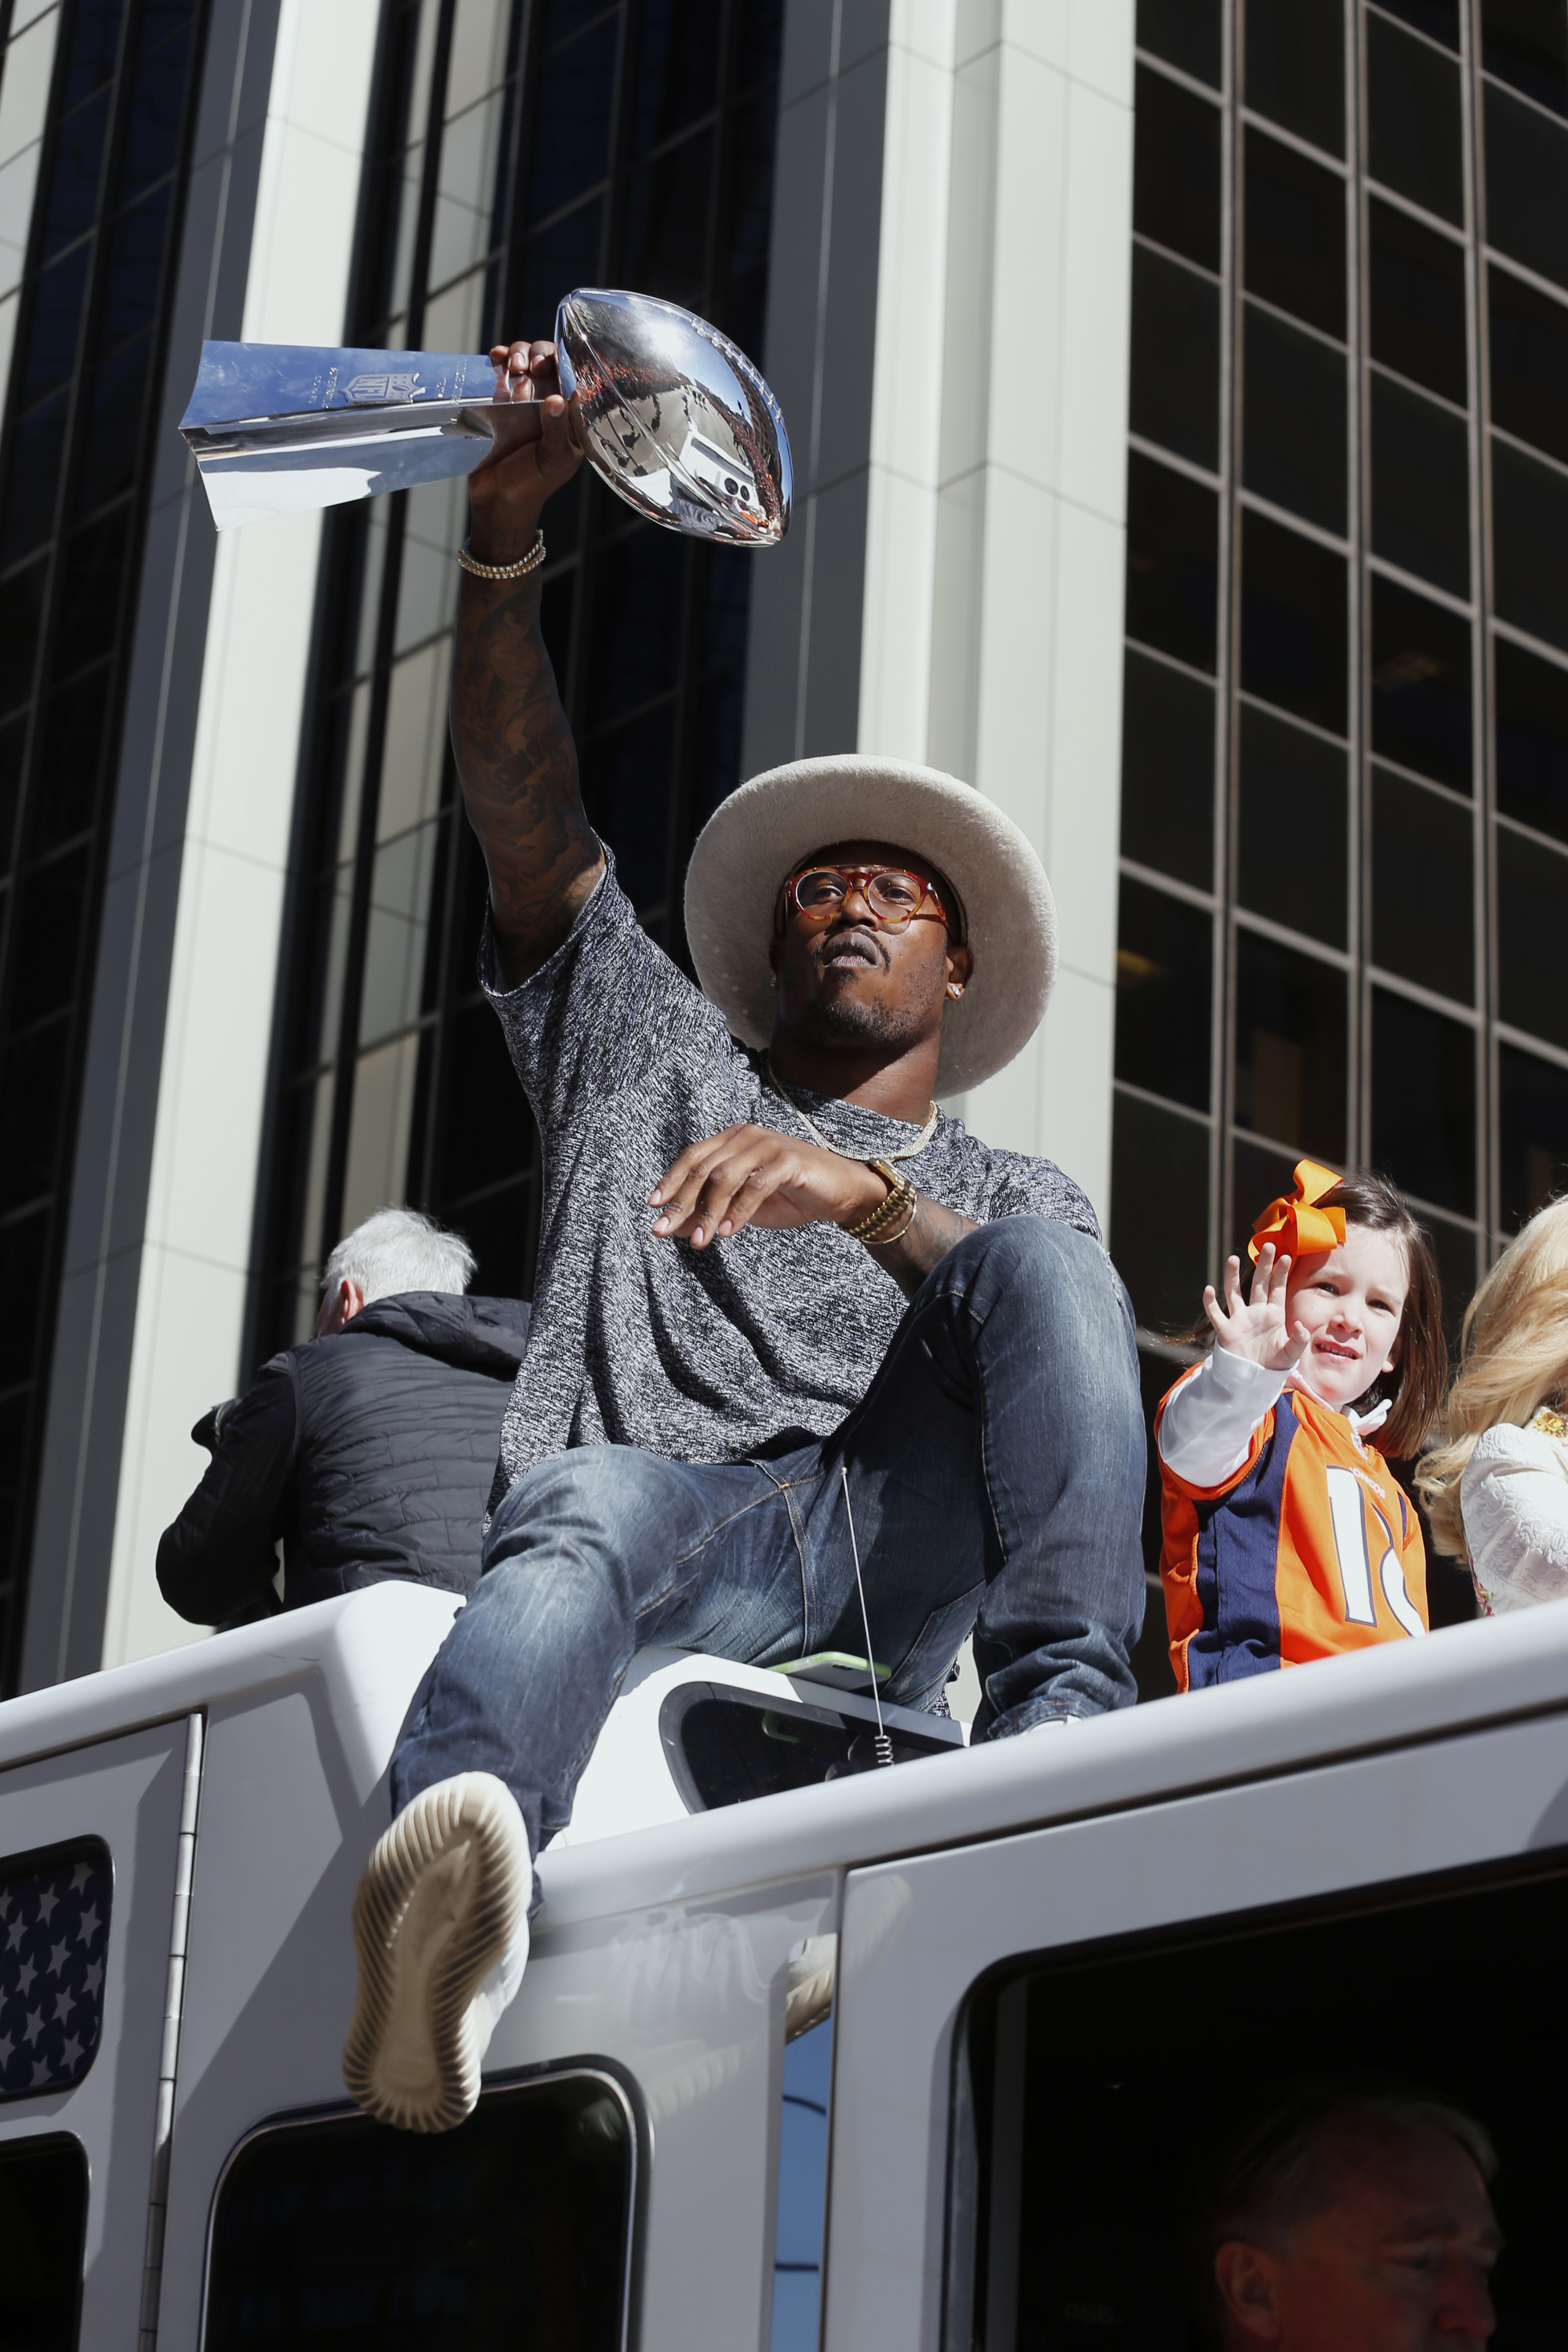 FILE - In this Tuesday, Feb. 9, 2016 file photo, Denver Broncos Super Bowl MVP defensive back Von Miller hoists the Lombardi Trophy high for the fans to see during a Super Bowl victory parade in Denver. The Super Bowl champions reconvened Monday, April 18